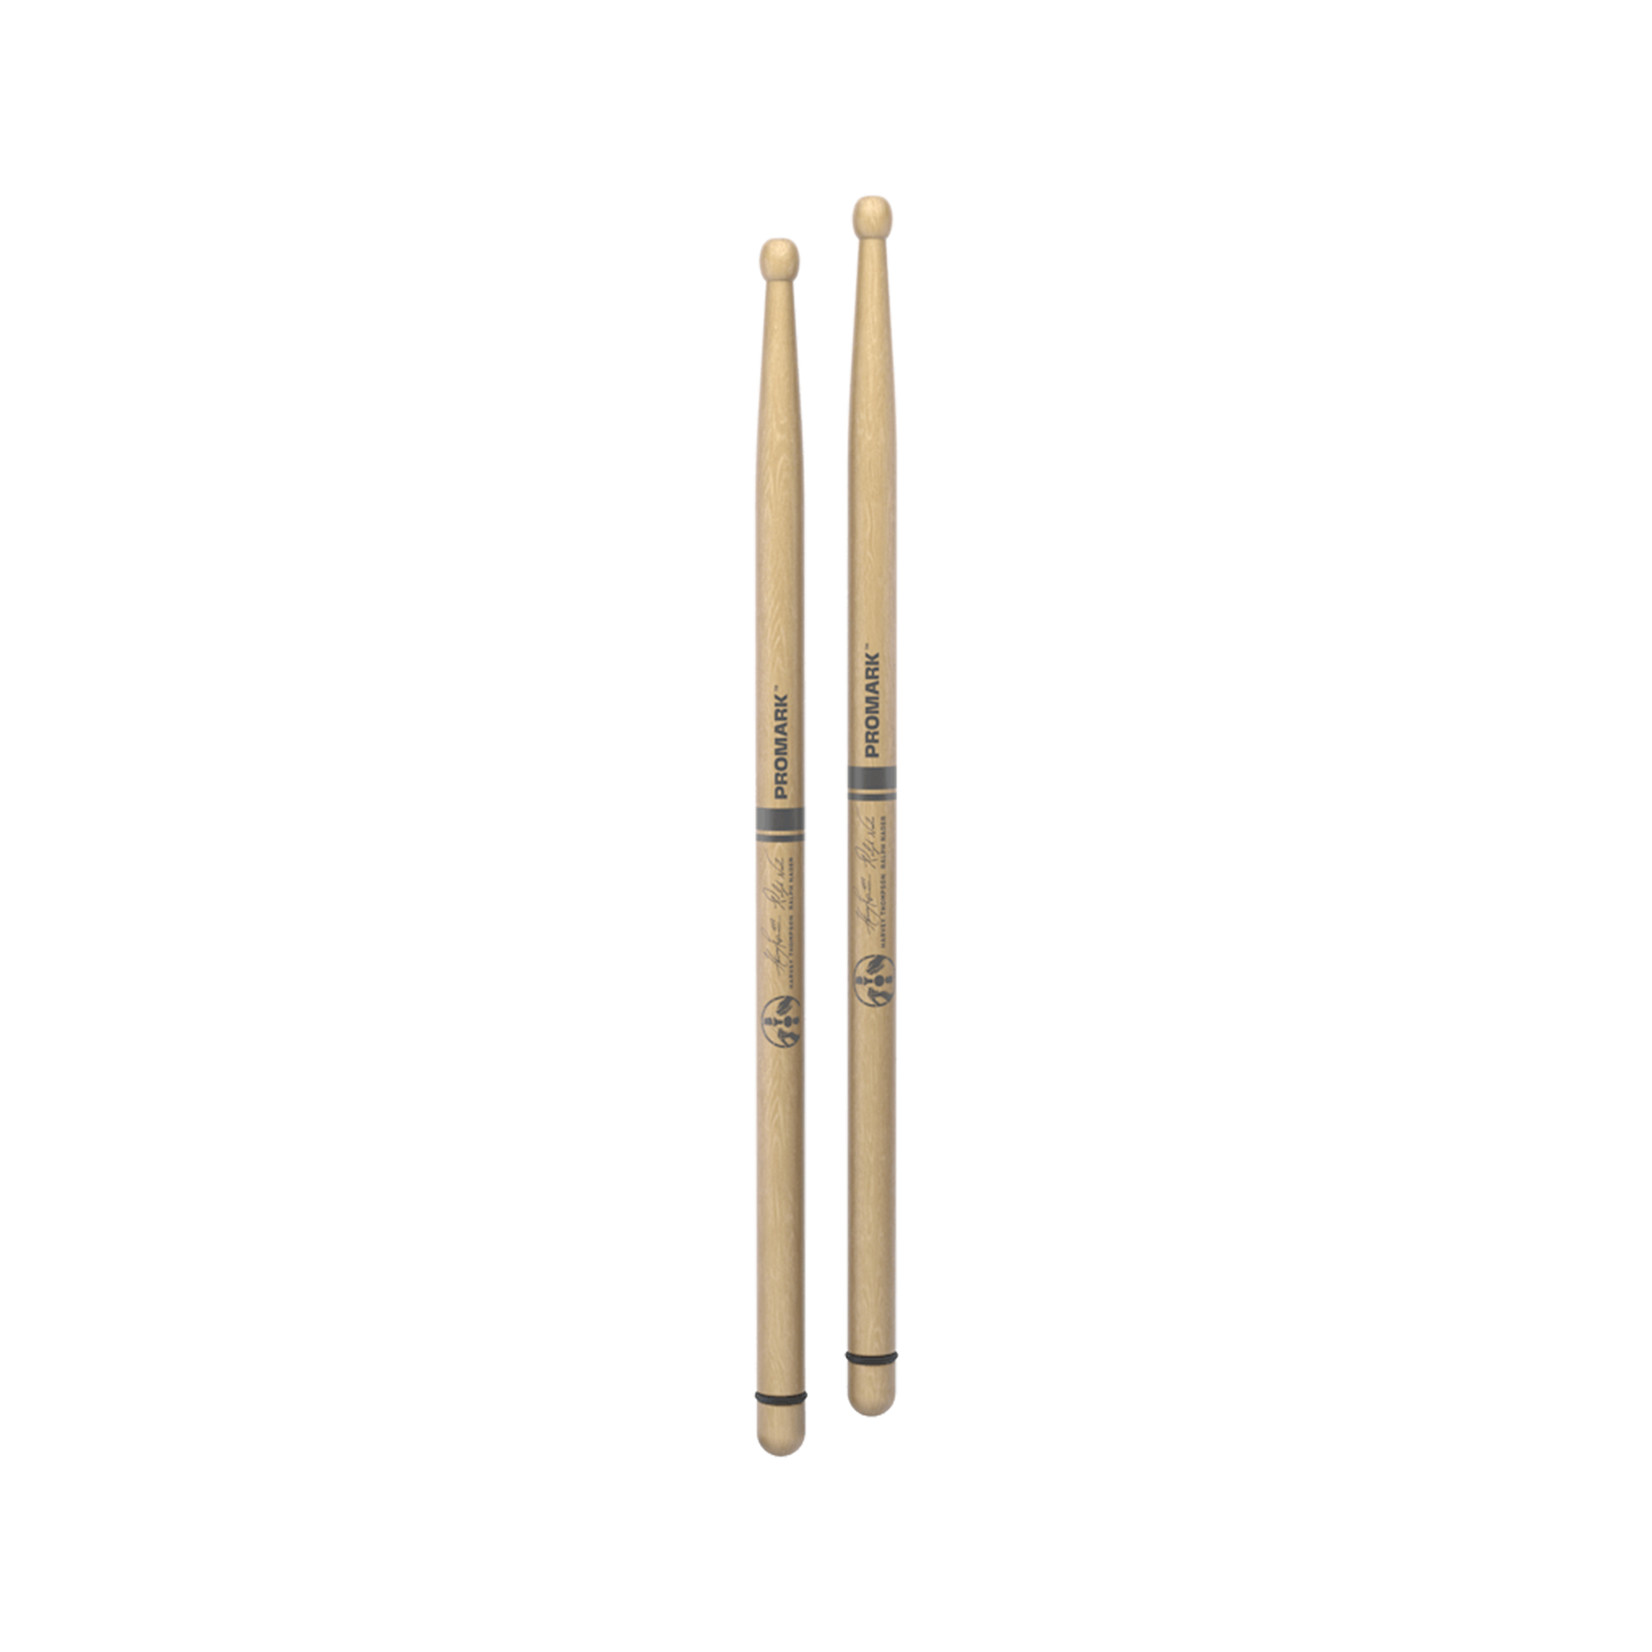 Promark ProMark BYOS Hickory Wood Tip Drumstick